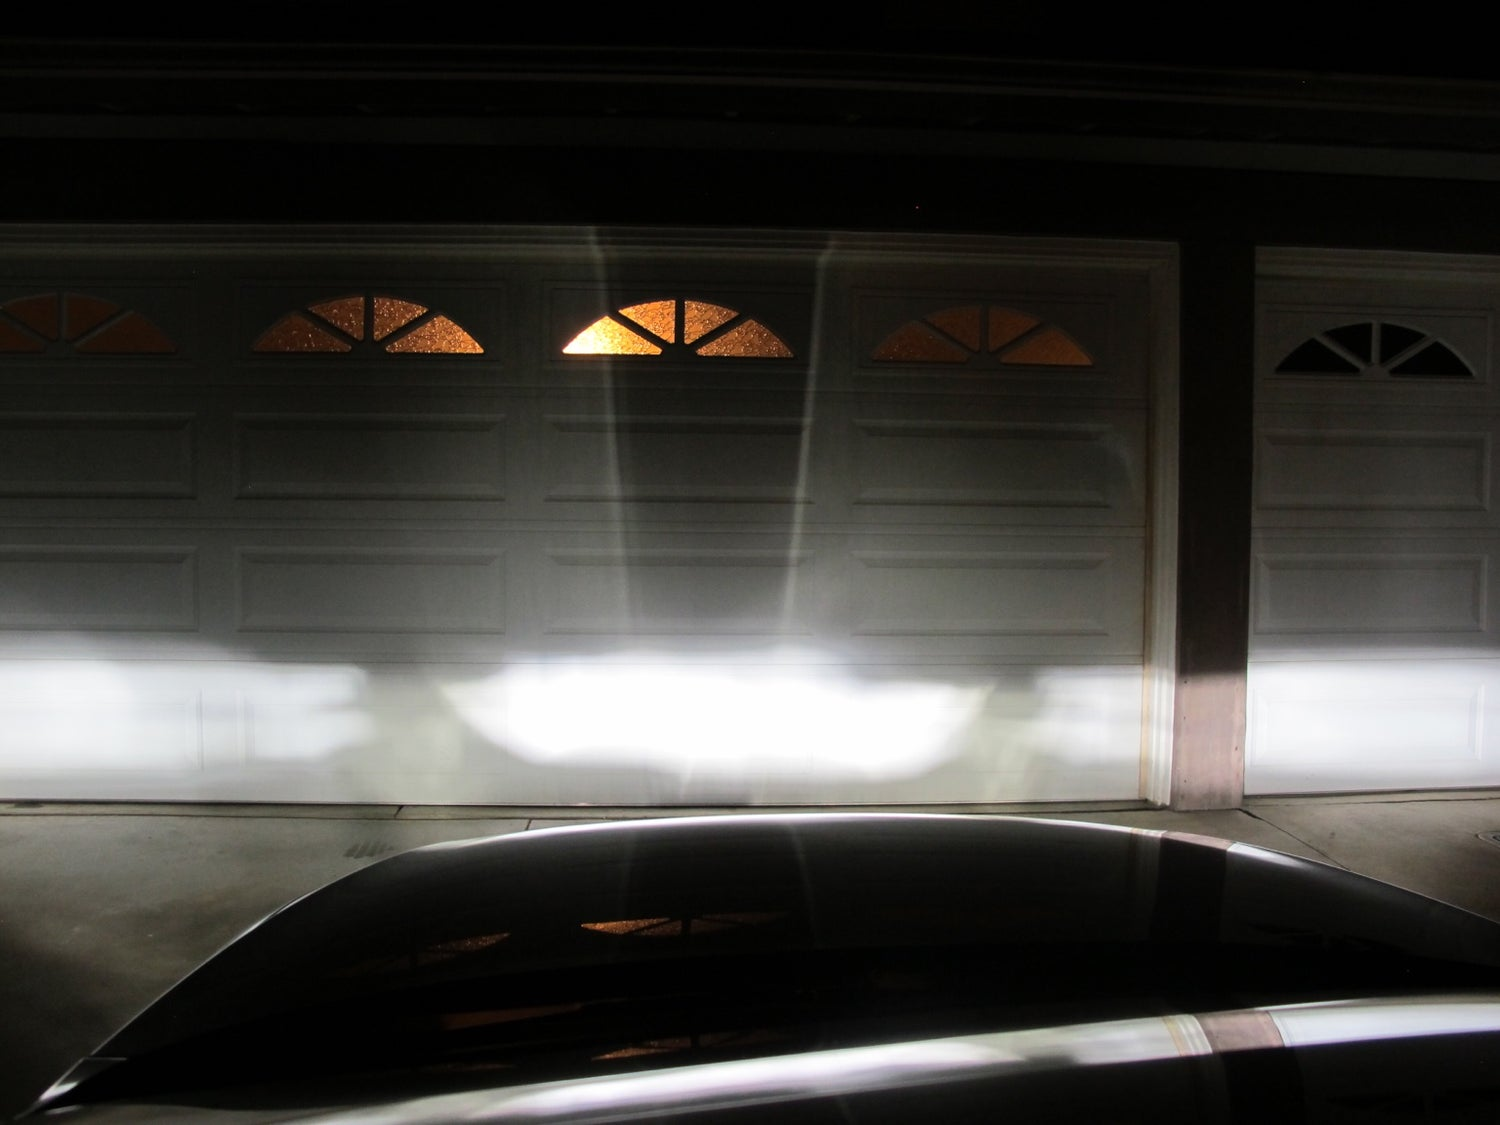 Image of Complete LED Fog Light Kit Fits: MK6 & MK7 Jetta models with H8 bulbs